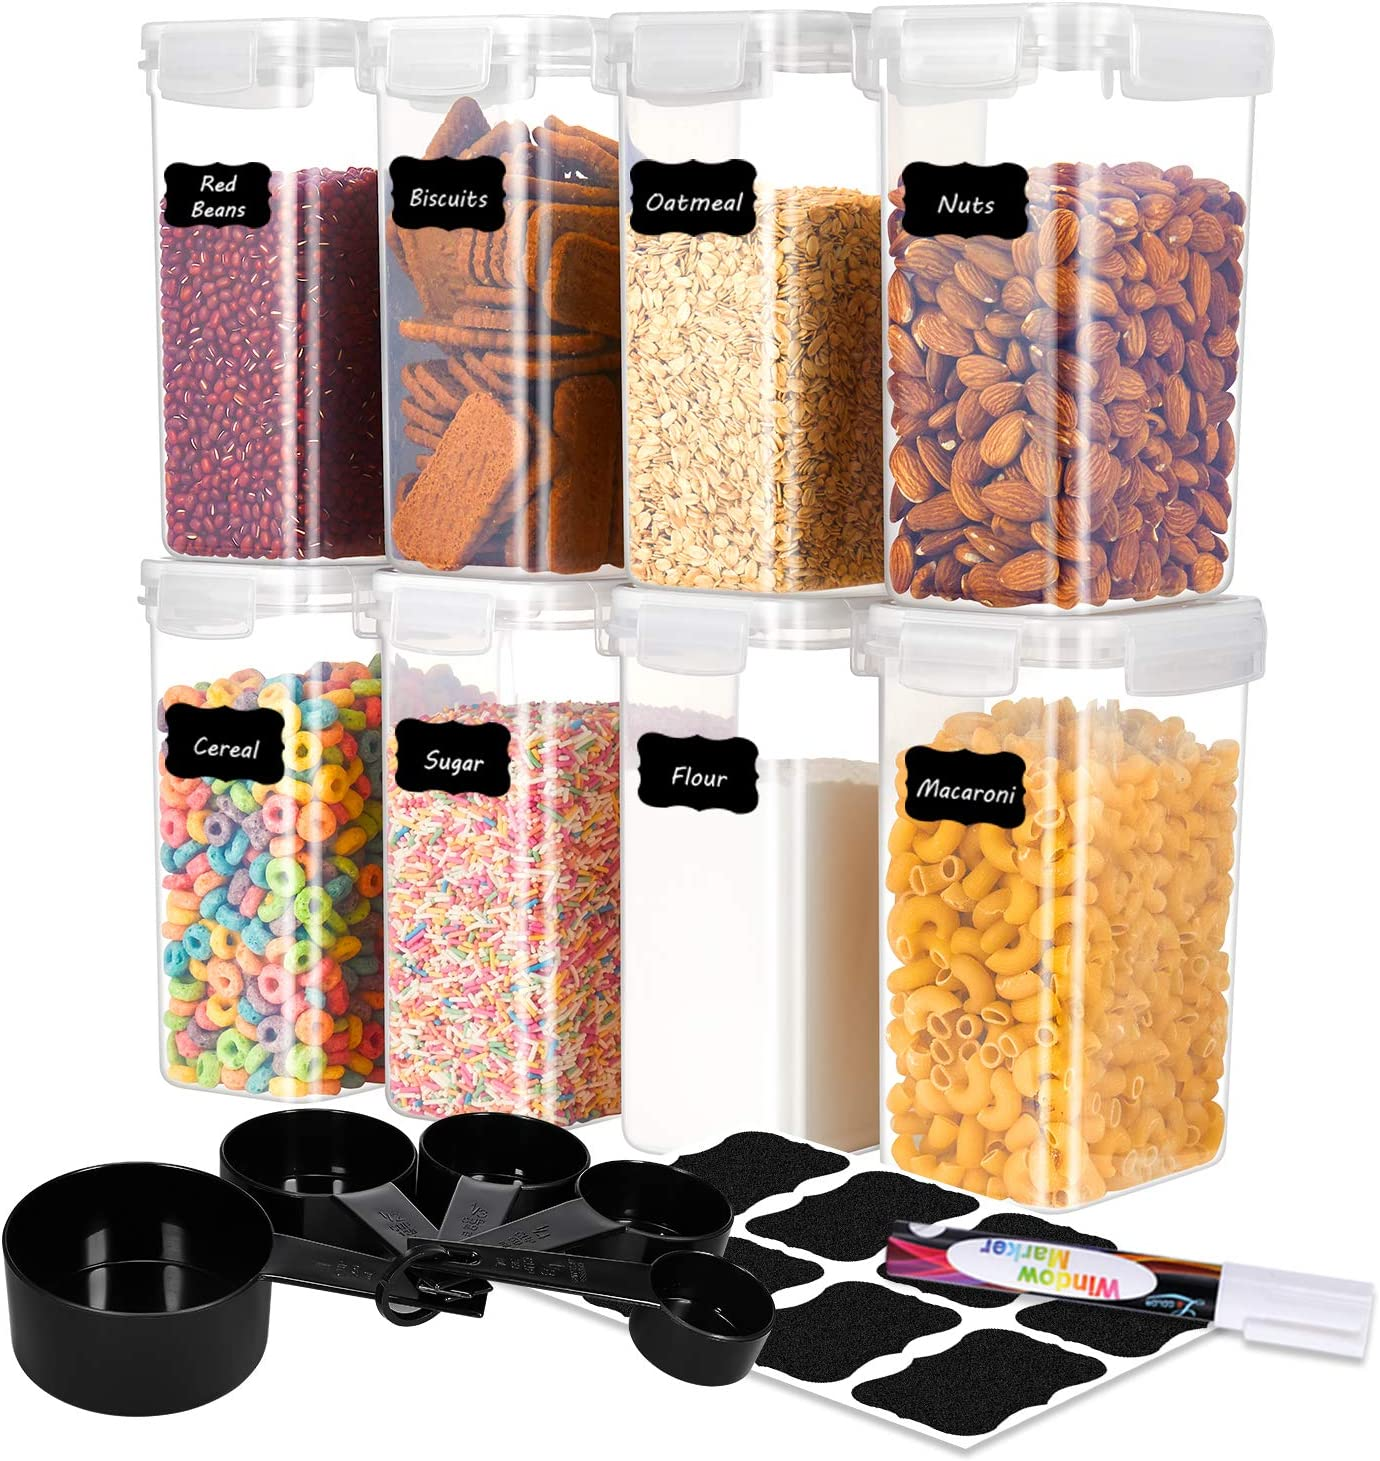 ME.FAN Food Storage Containers [Set of 8] Airtight Storage Keeper-Food Canisters 2.0L(67.64oz) with 5 Set Measuring Cups 24 Chalkboard labels & Pen - White